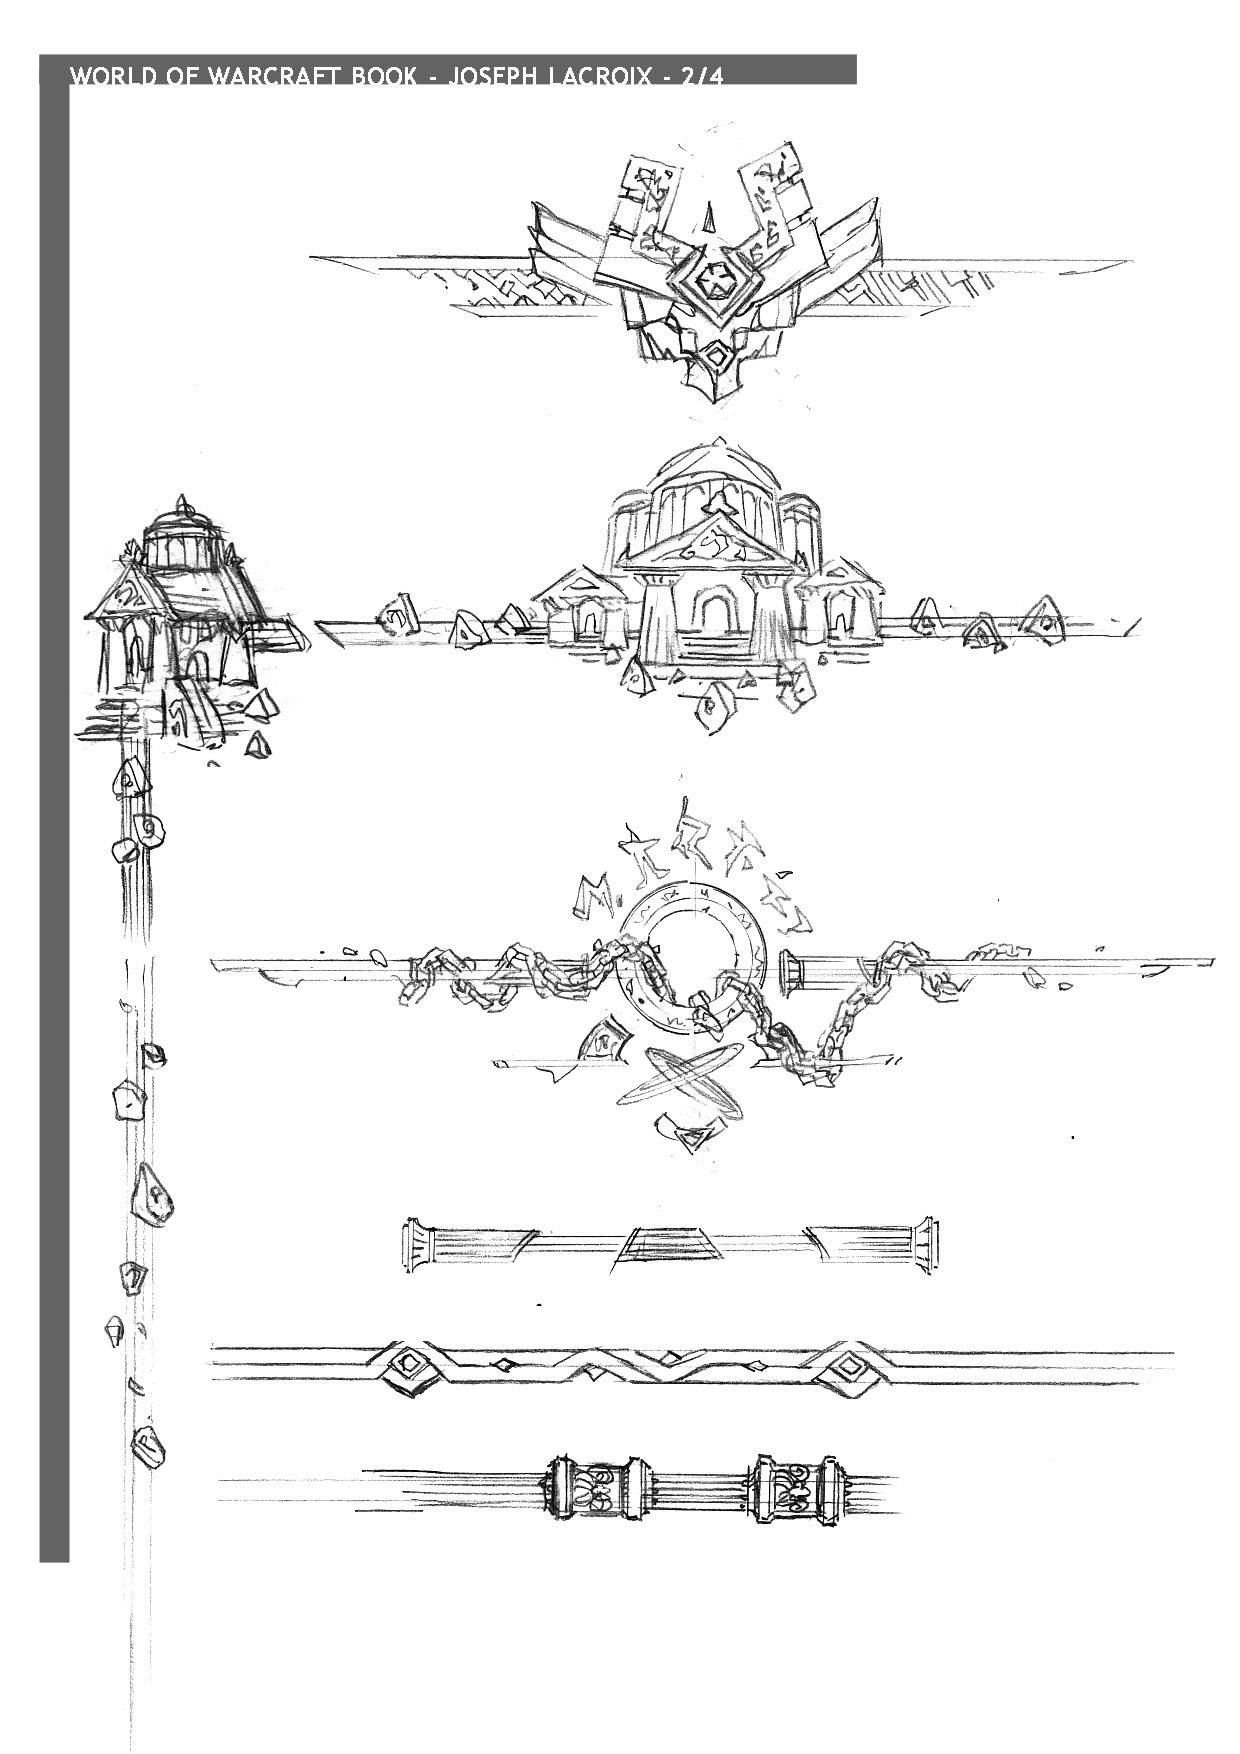 Dessin réalisé par Joseph Lacroix pour World of Warcraft: Chronicle Volume 1.